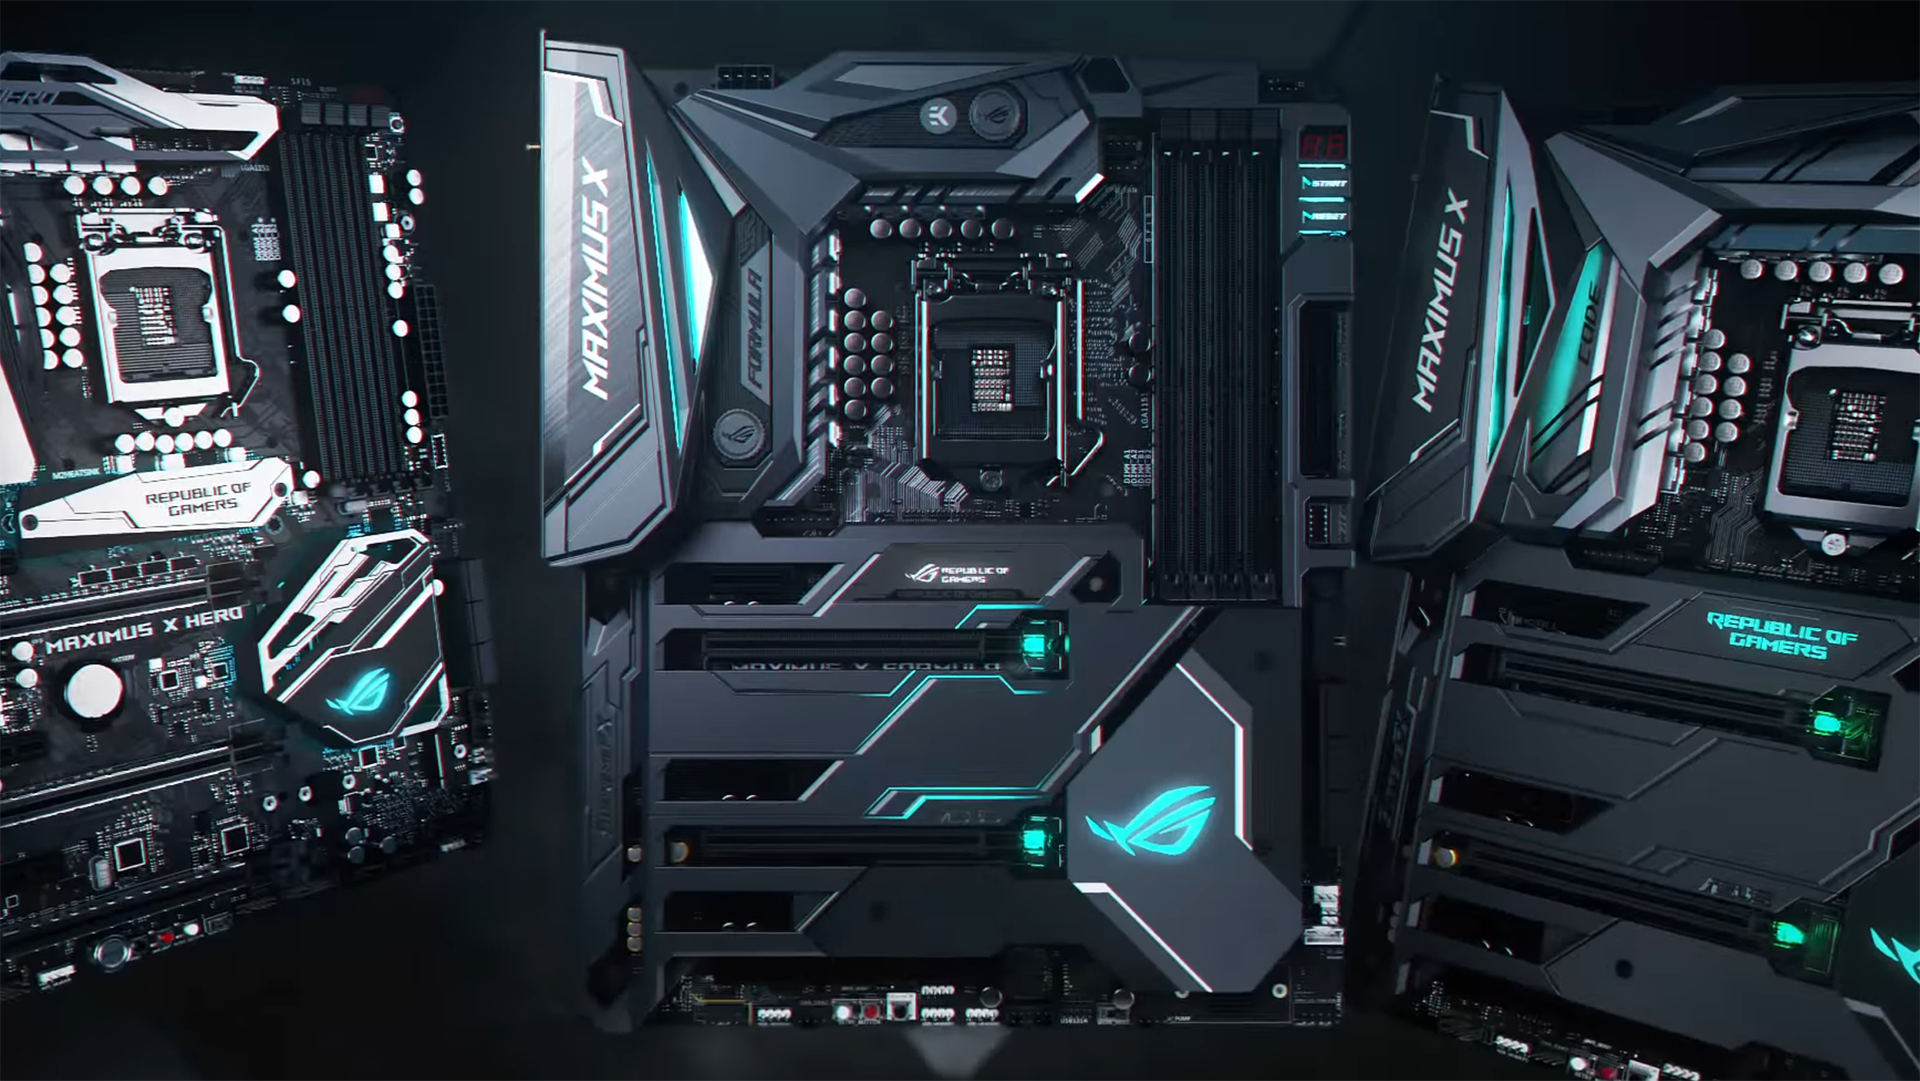 Z370 motherboards axed – Asus accidentally lets slip details